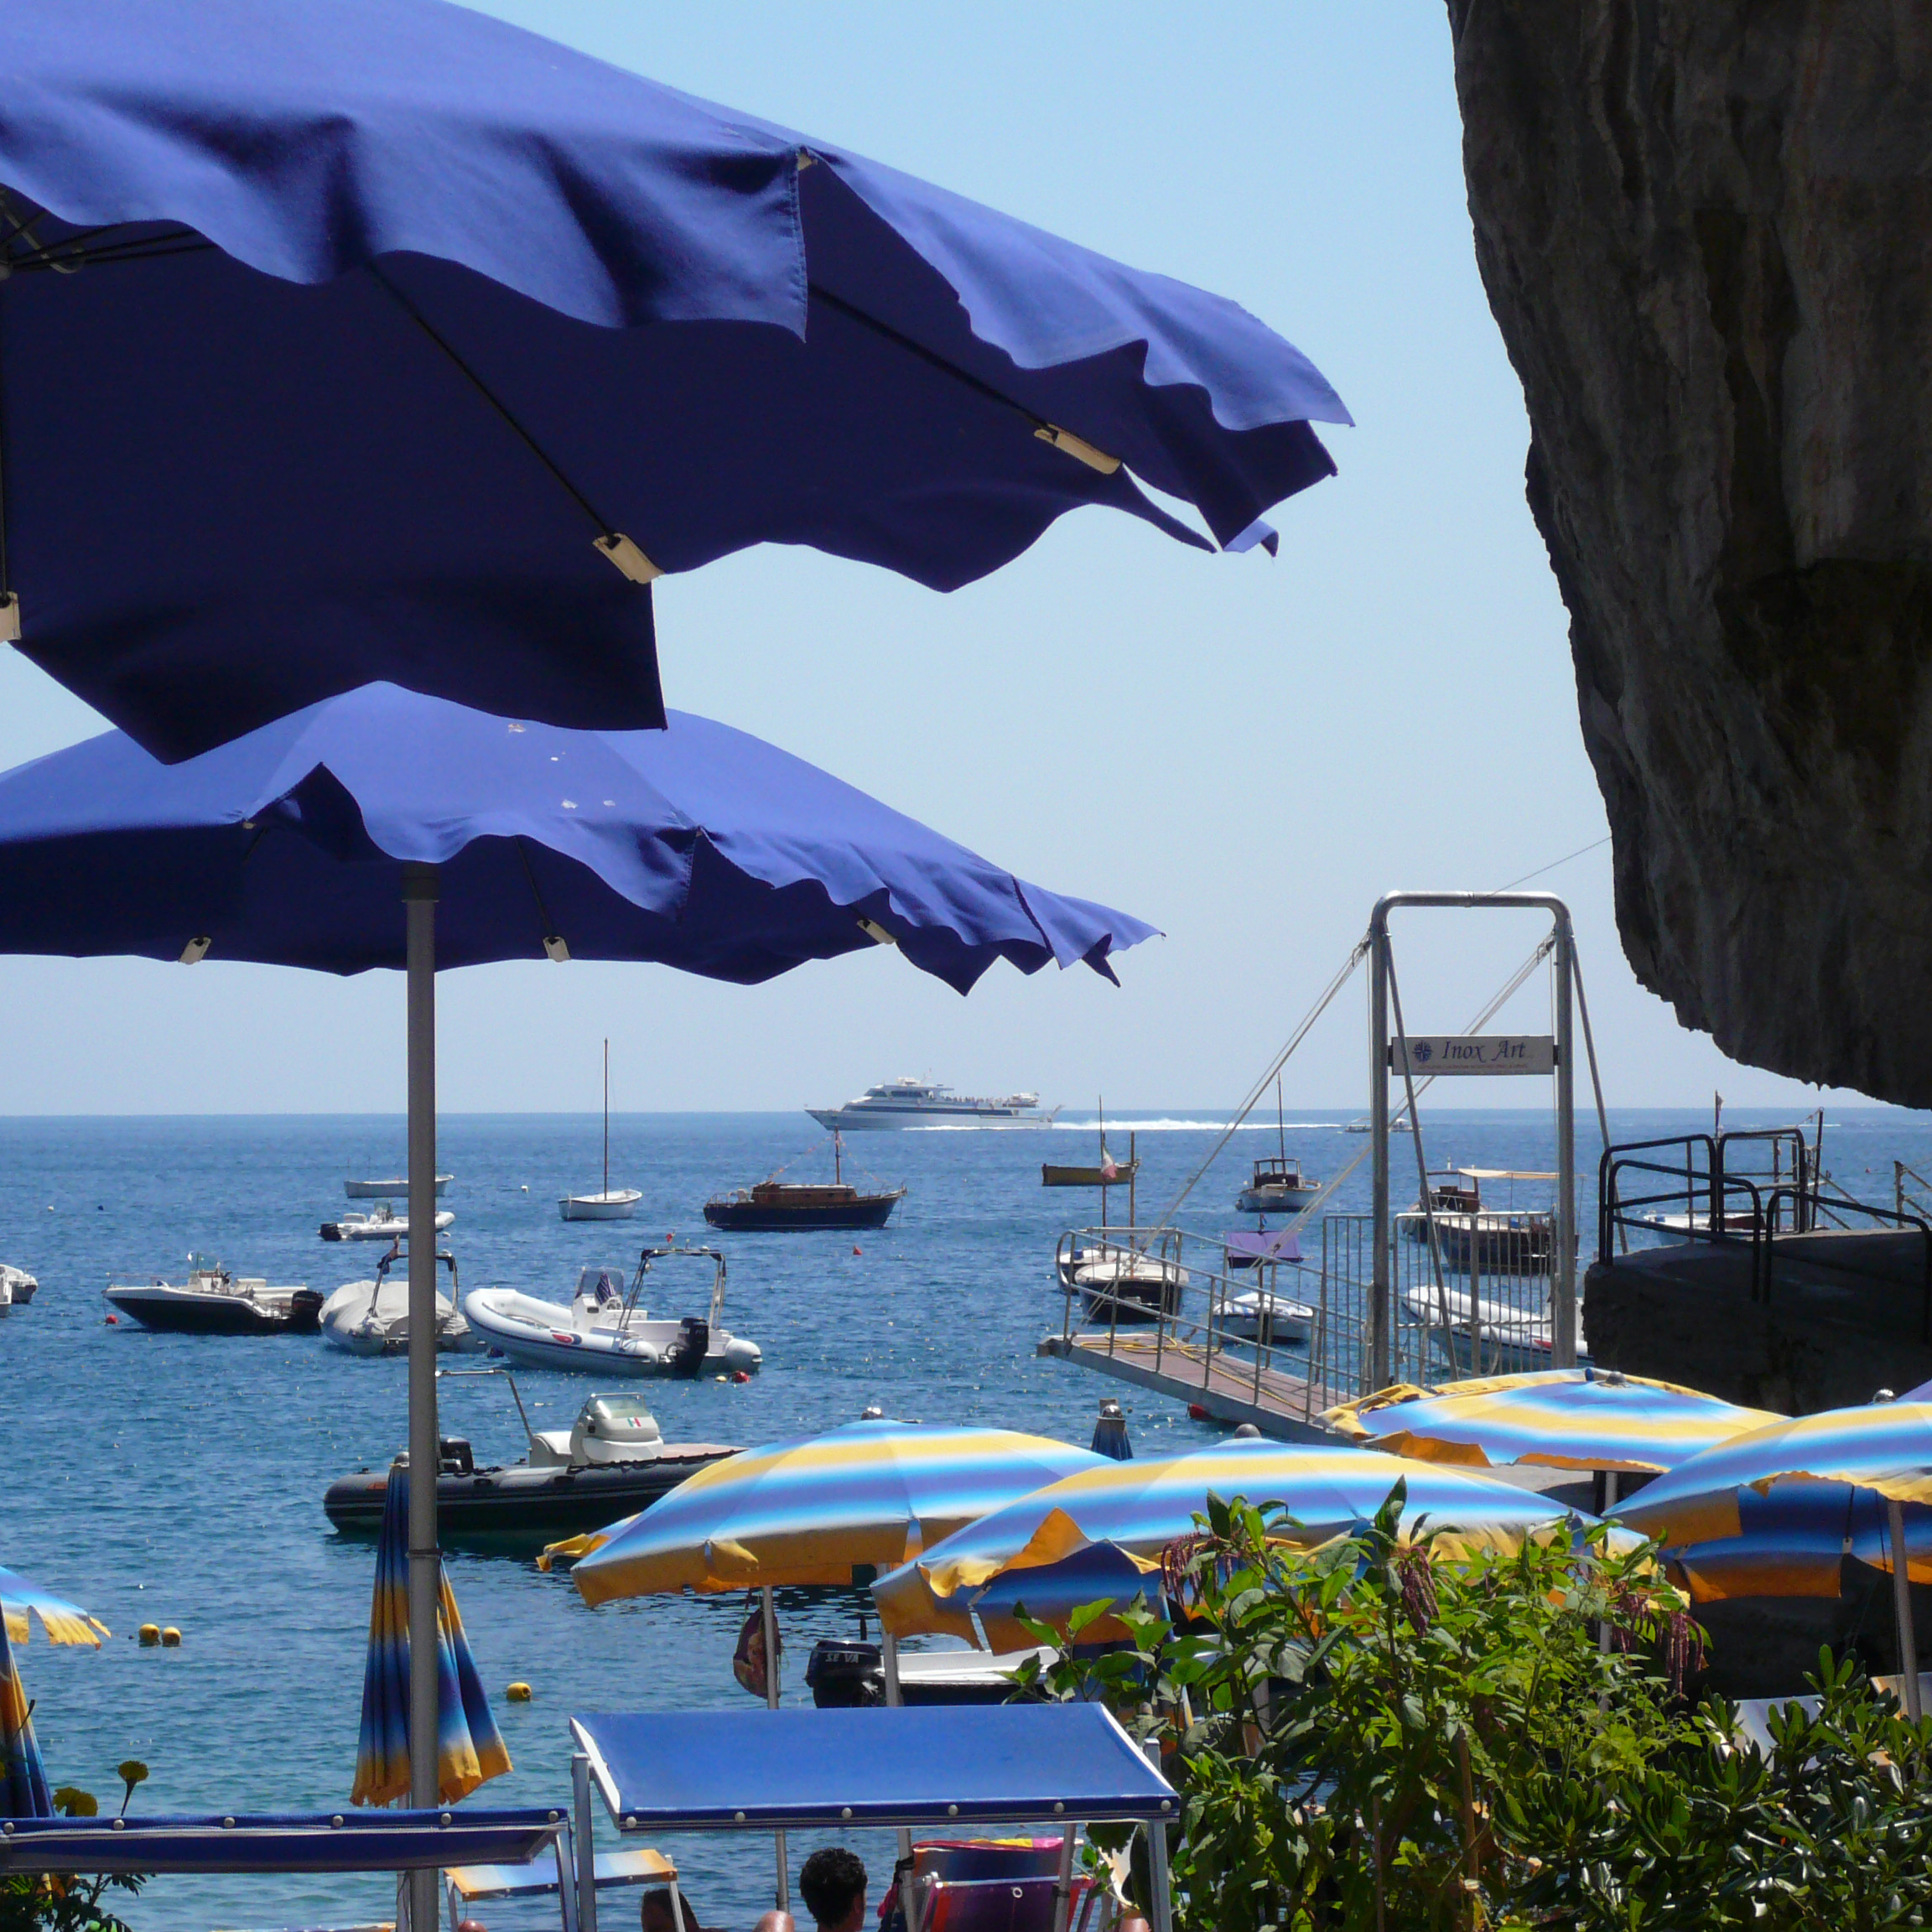 Italian Summers on the Amalfi Coast, secluded beach bays near Positano. Photo by Lisa van de Pol, Italian Summers